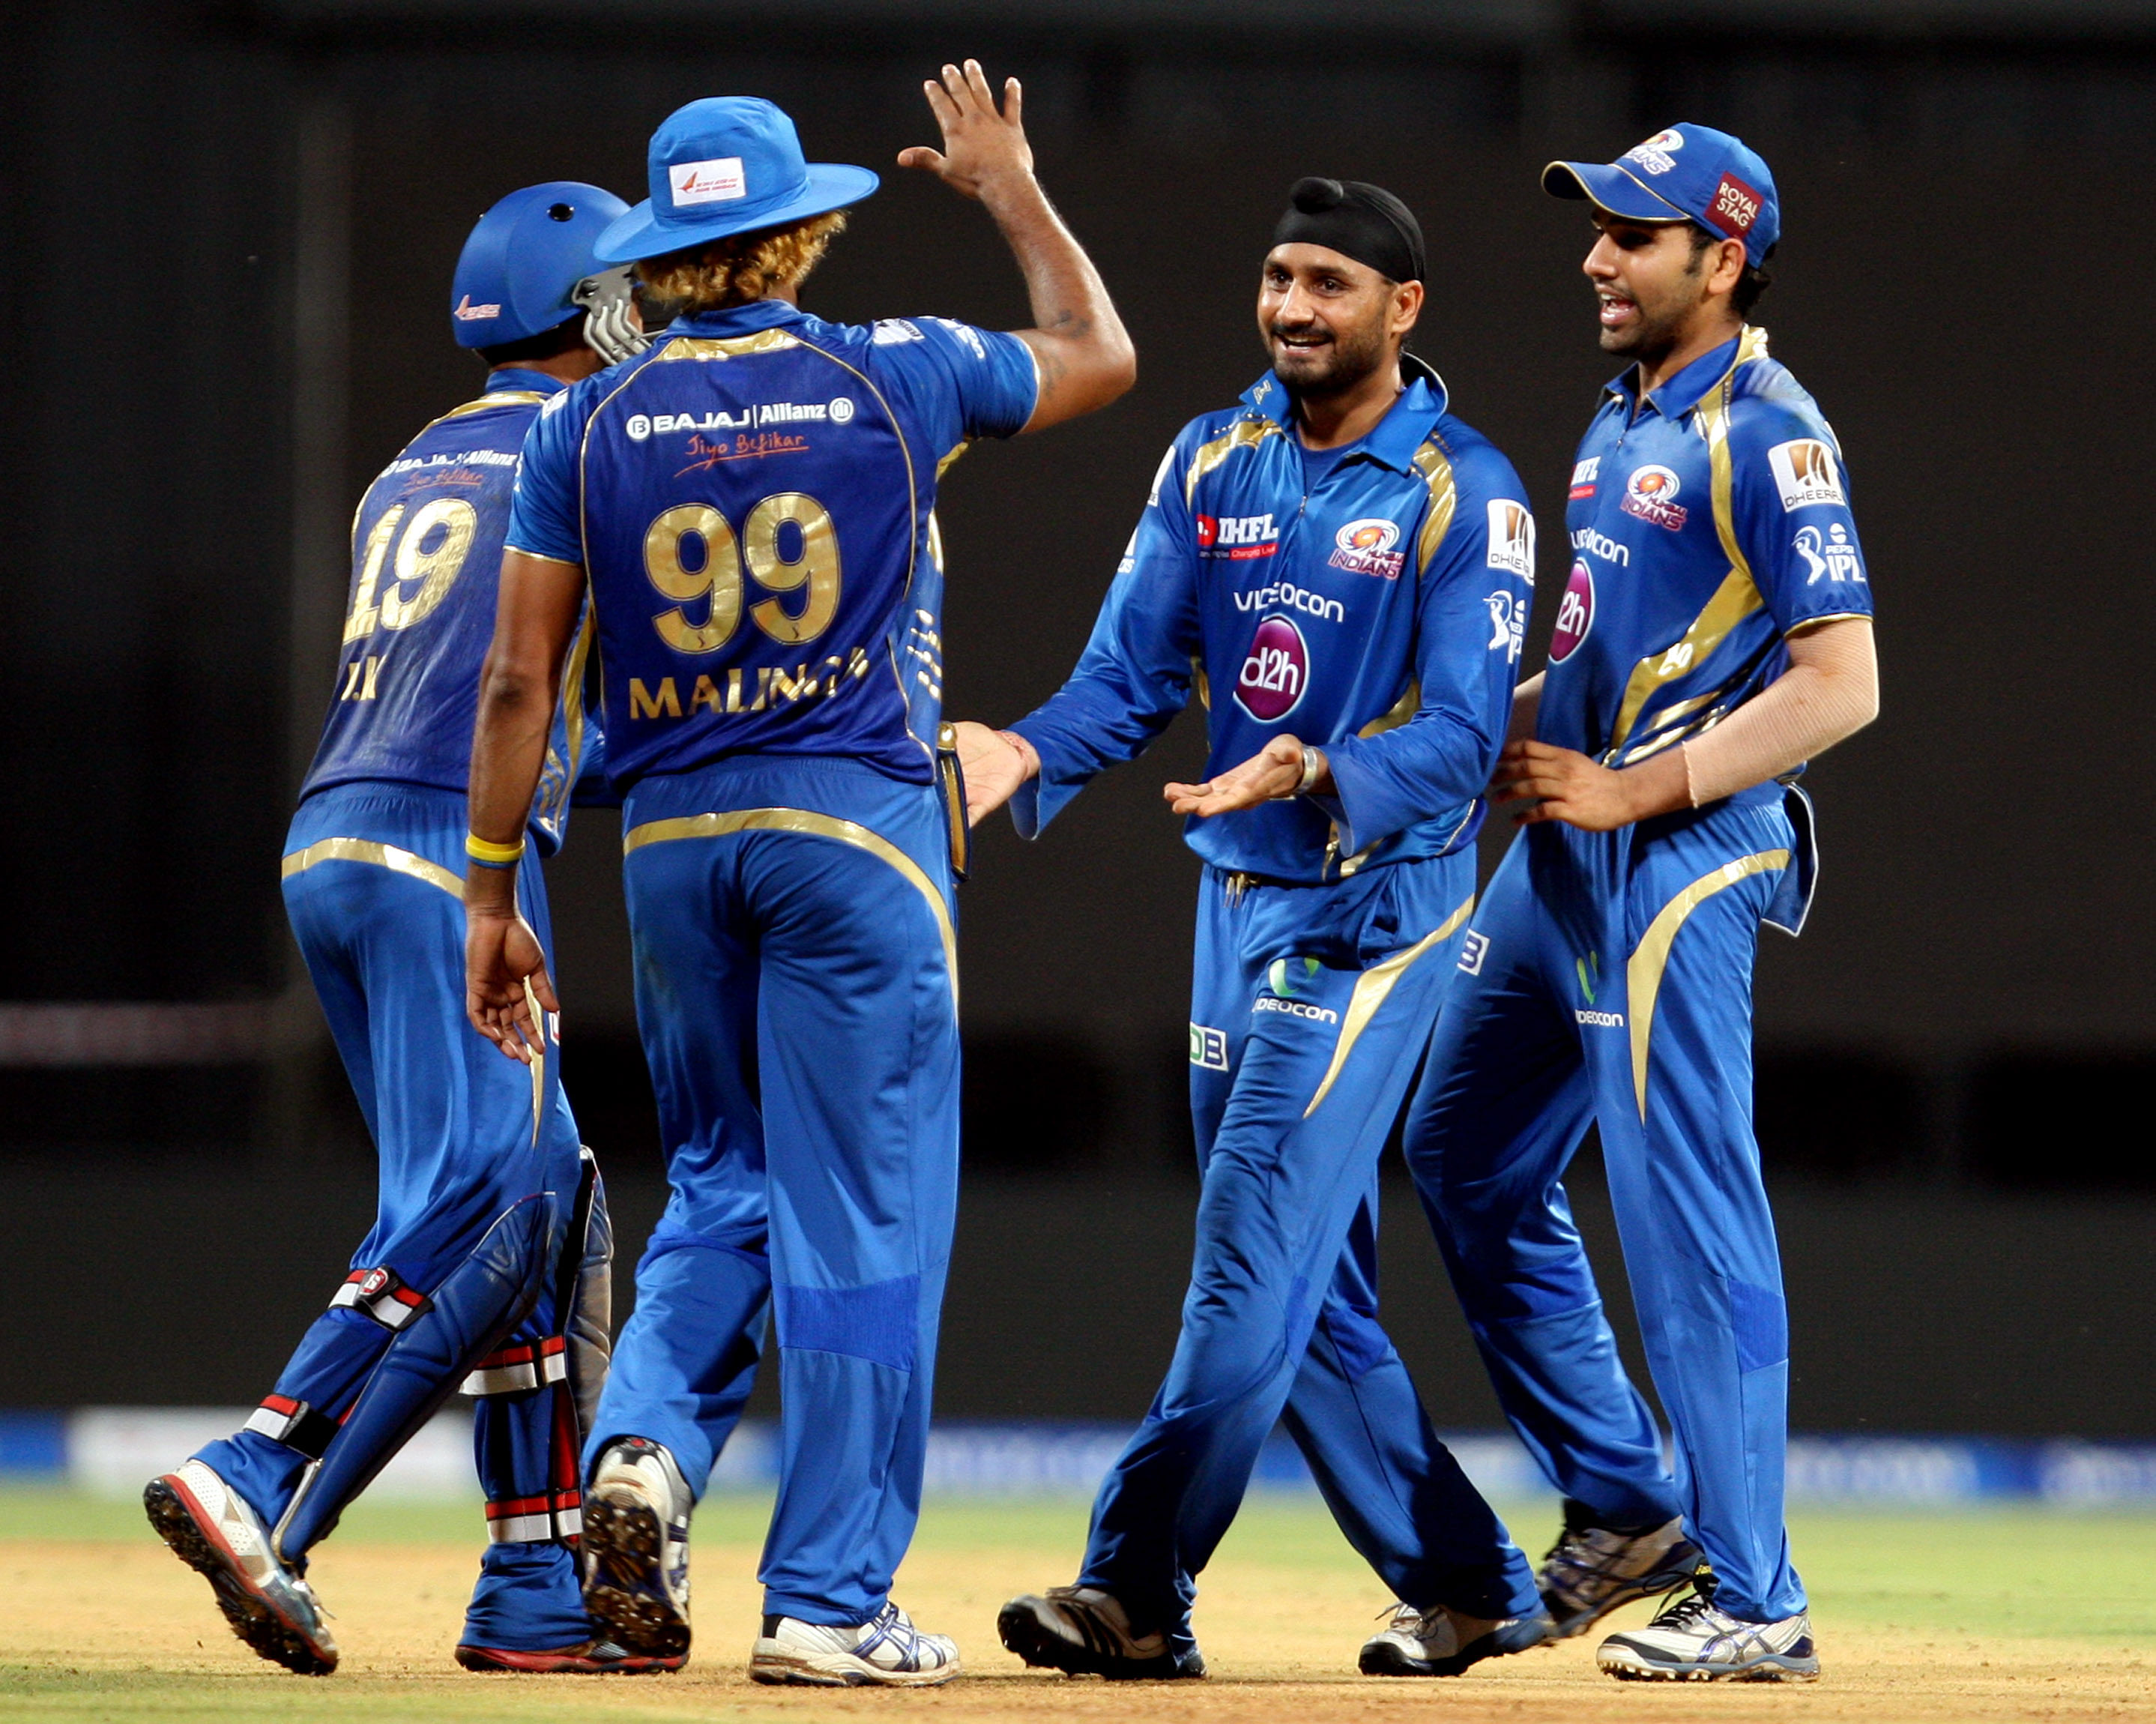 IPL 6: MI vs KXIP – Quick Flicks of the match